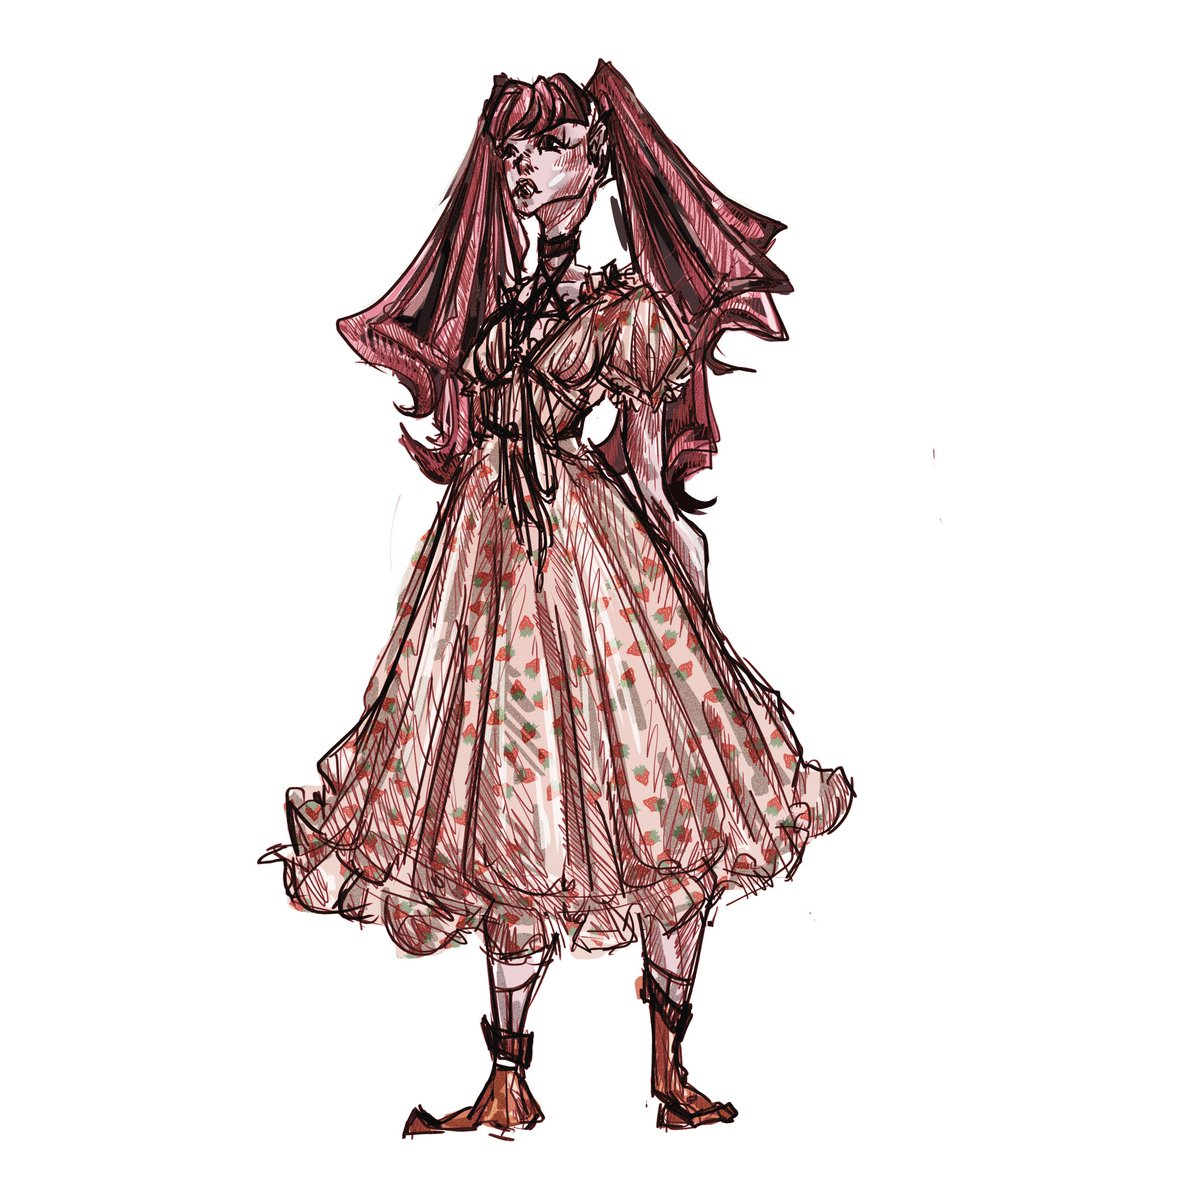 fuk, I'd almost forgotten abt the fact I also partook in that strawberry dress fiasco #strawberrydress #draculaura #monsterhigh #nostalgia #oldtrend #trend #fashion #trendy #fashionable #ethereal #monster #random #art #artwork #illustration #meme #dontatme #drawing #doodle #pink